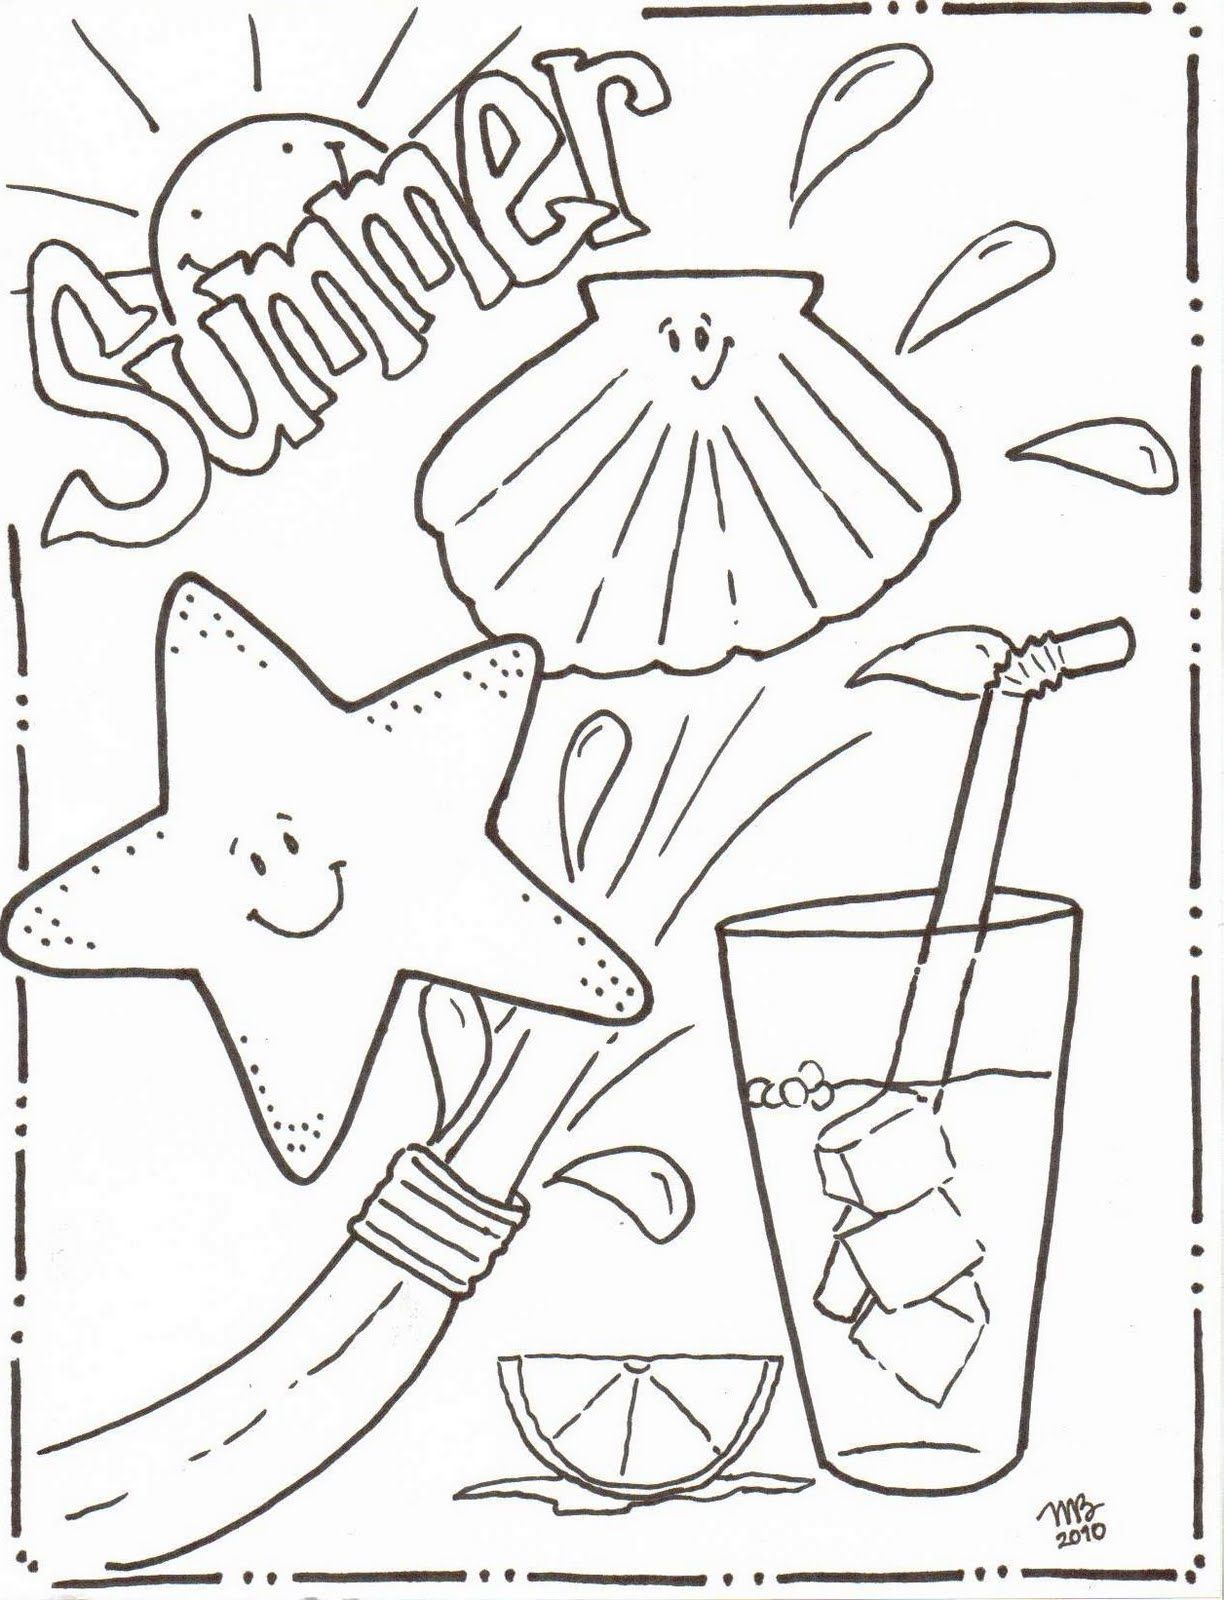 Summer-for-coloring-pictures-9  Cool coloring pages, Summer